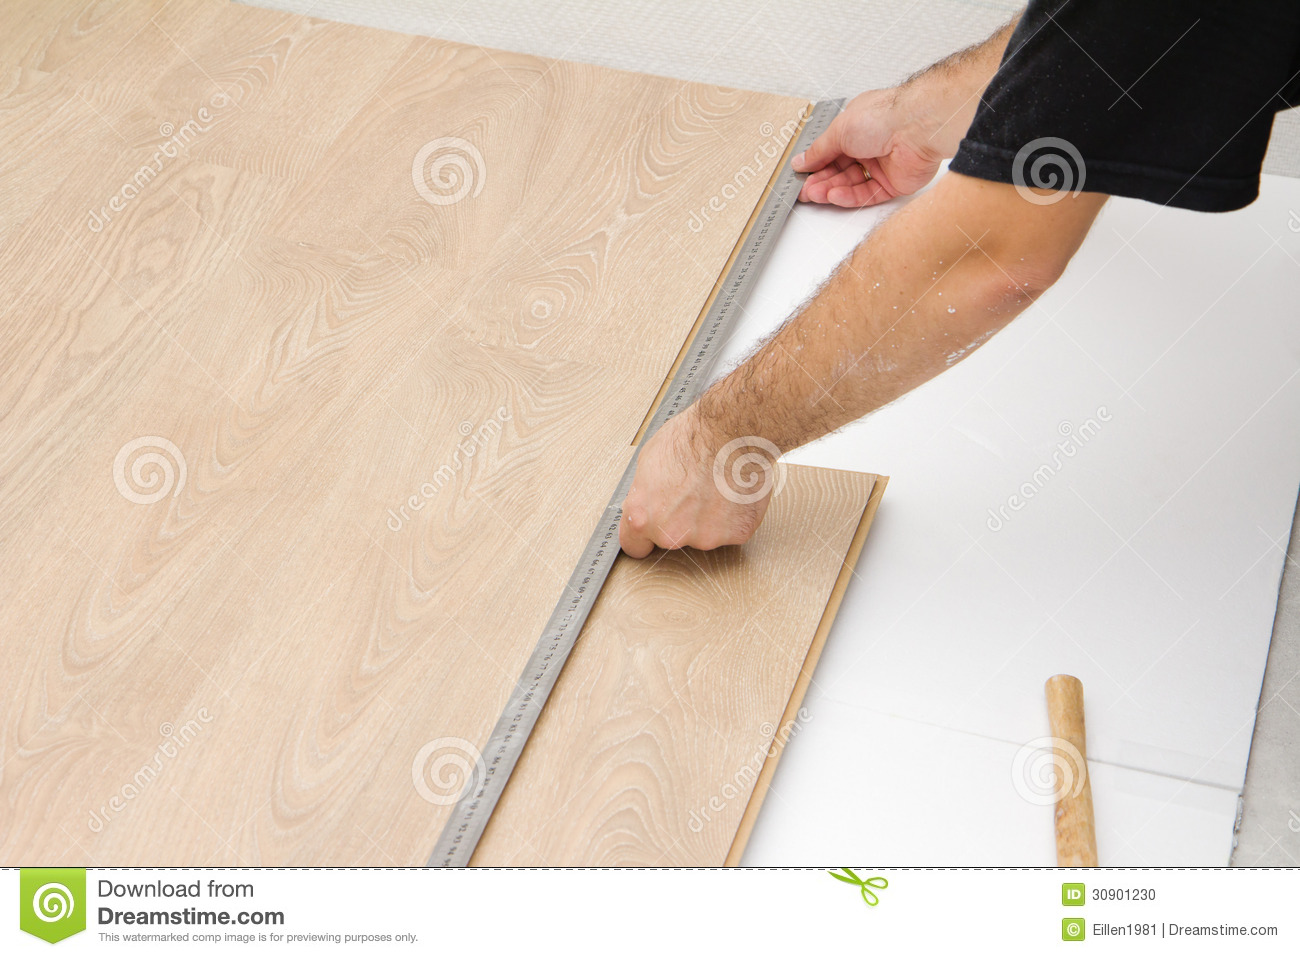 Laminate Flooring Laminate Flooring Measuring